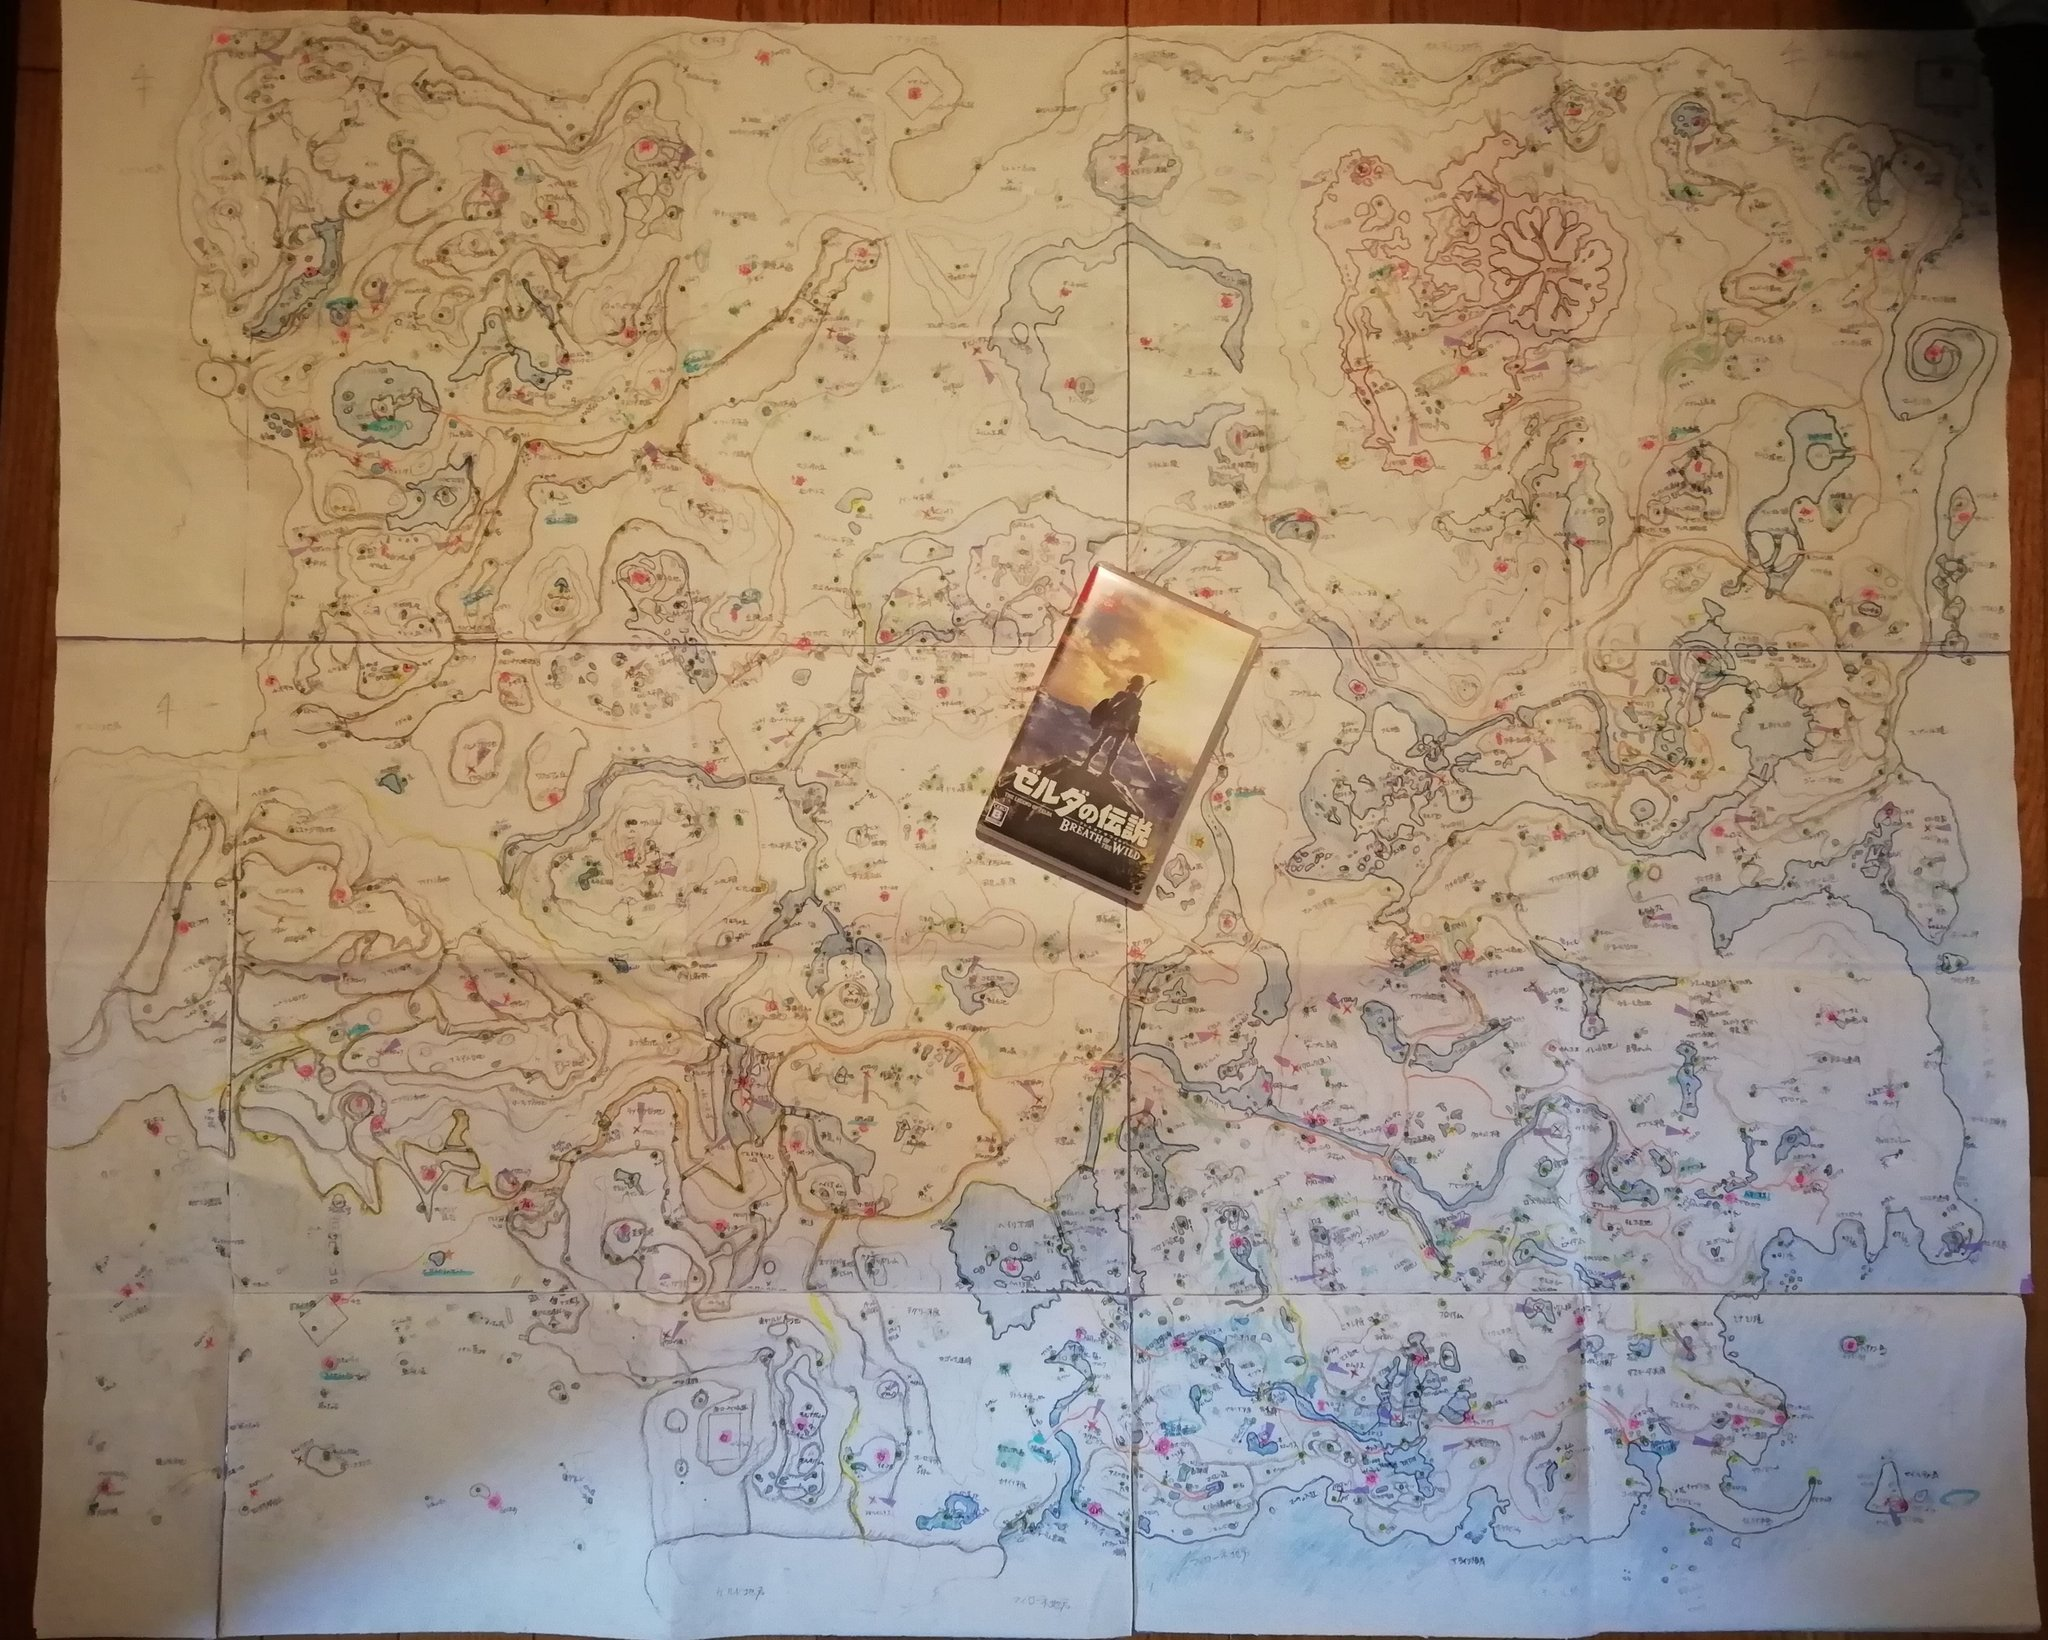 Check out this massive Legend of Zelda: Breath of the Wild hand-drawn map